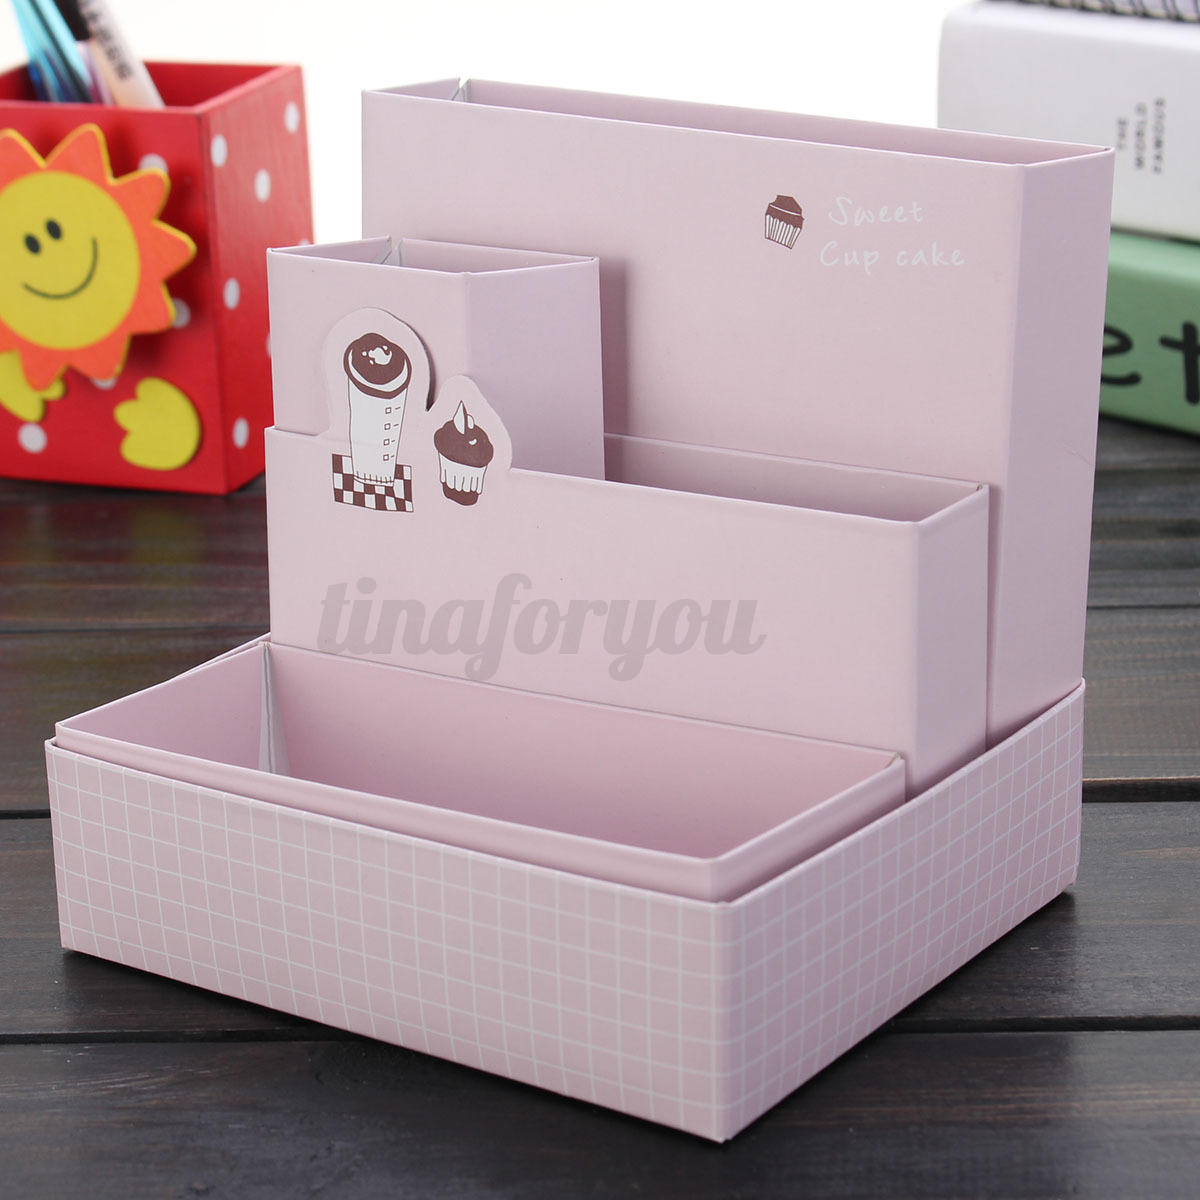 Desk Organiser Stationery Cute Paper Board Storage Box Desk Decor Stationery Makeup